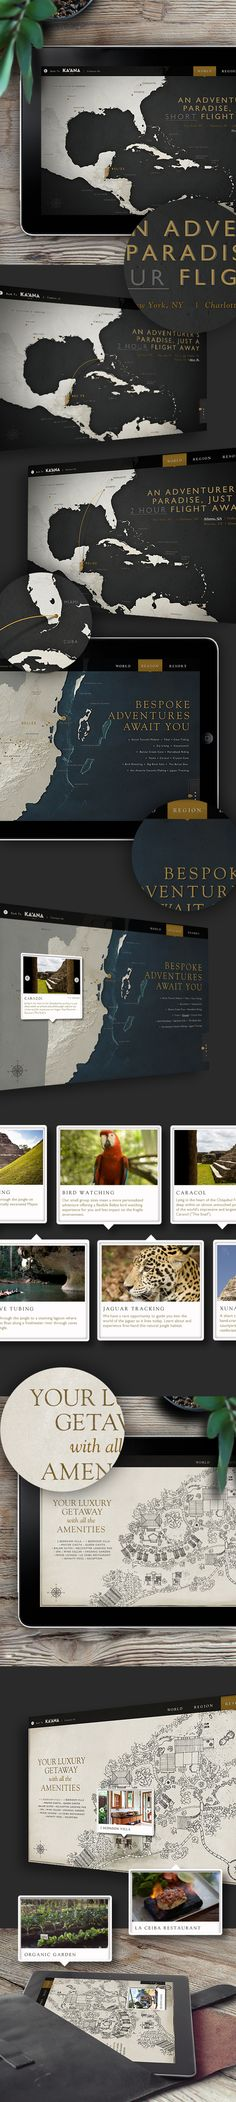 Belize Interactive Map for Ka'ana Boutique Resort by Amy Weibel, via Behance